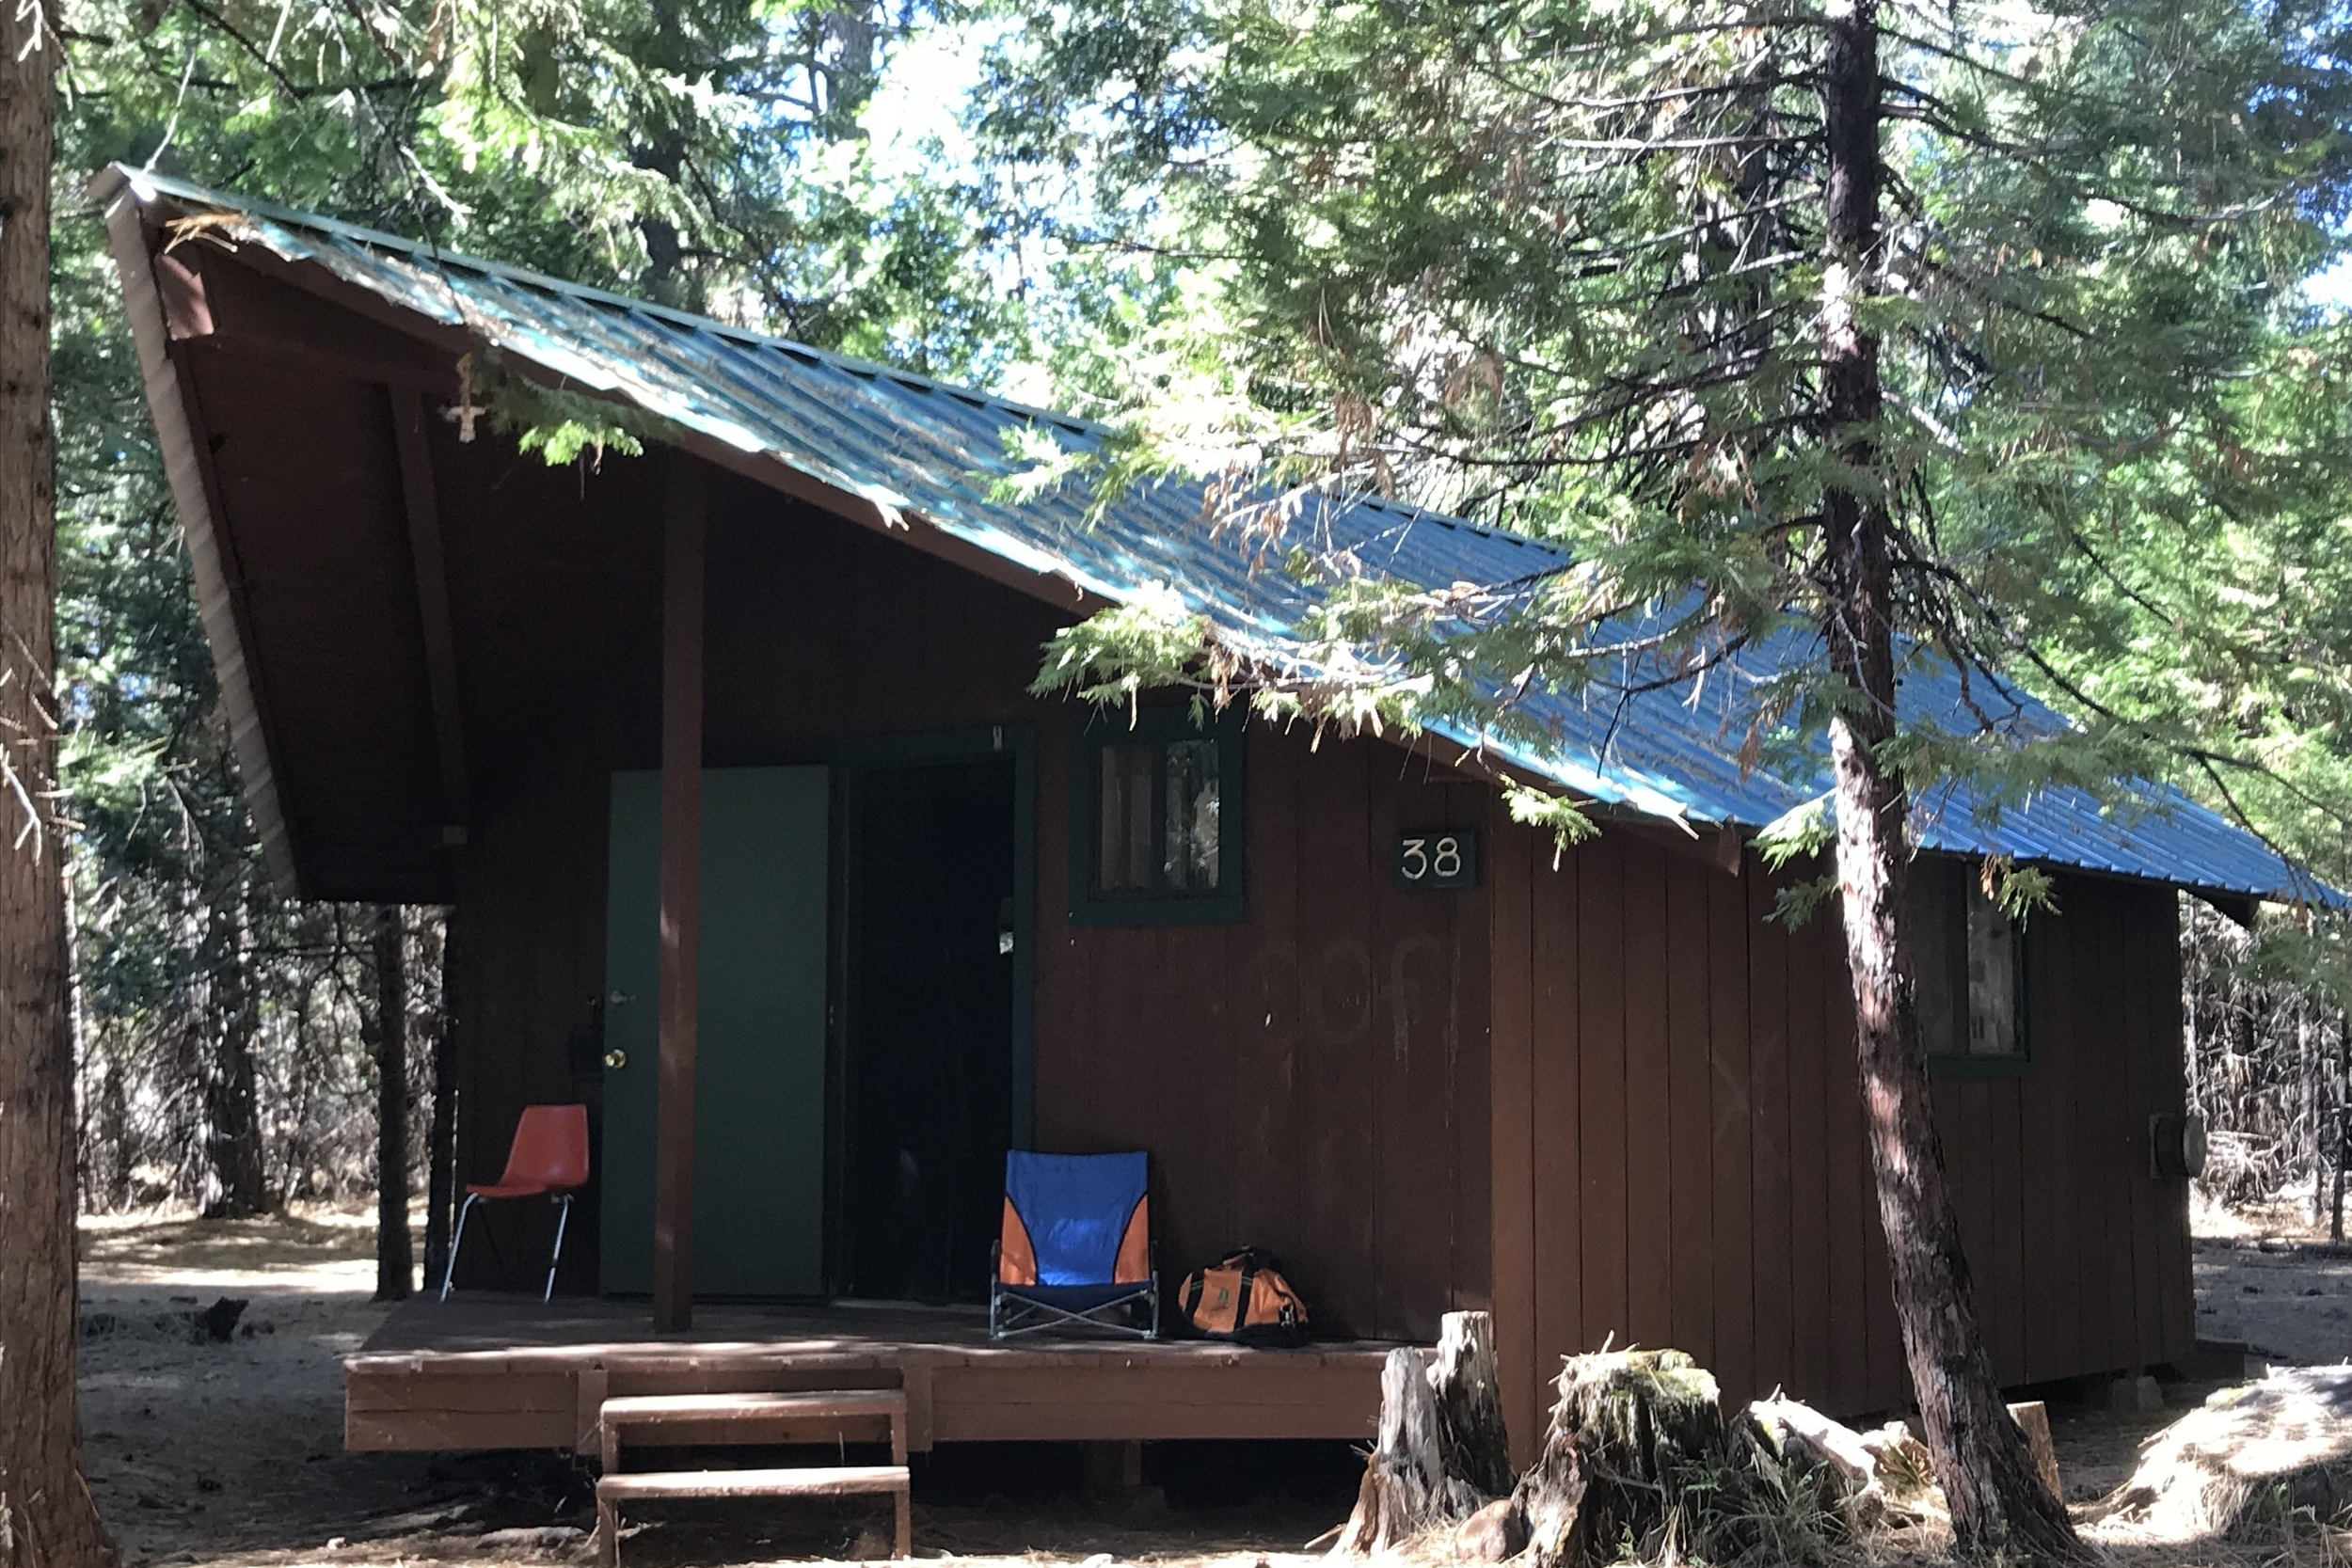 Community of the Great Commission_Bobbitt Cabin 38_California Group Camp Retreat Rental.JPG